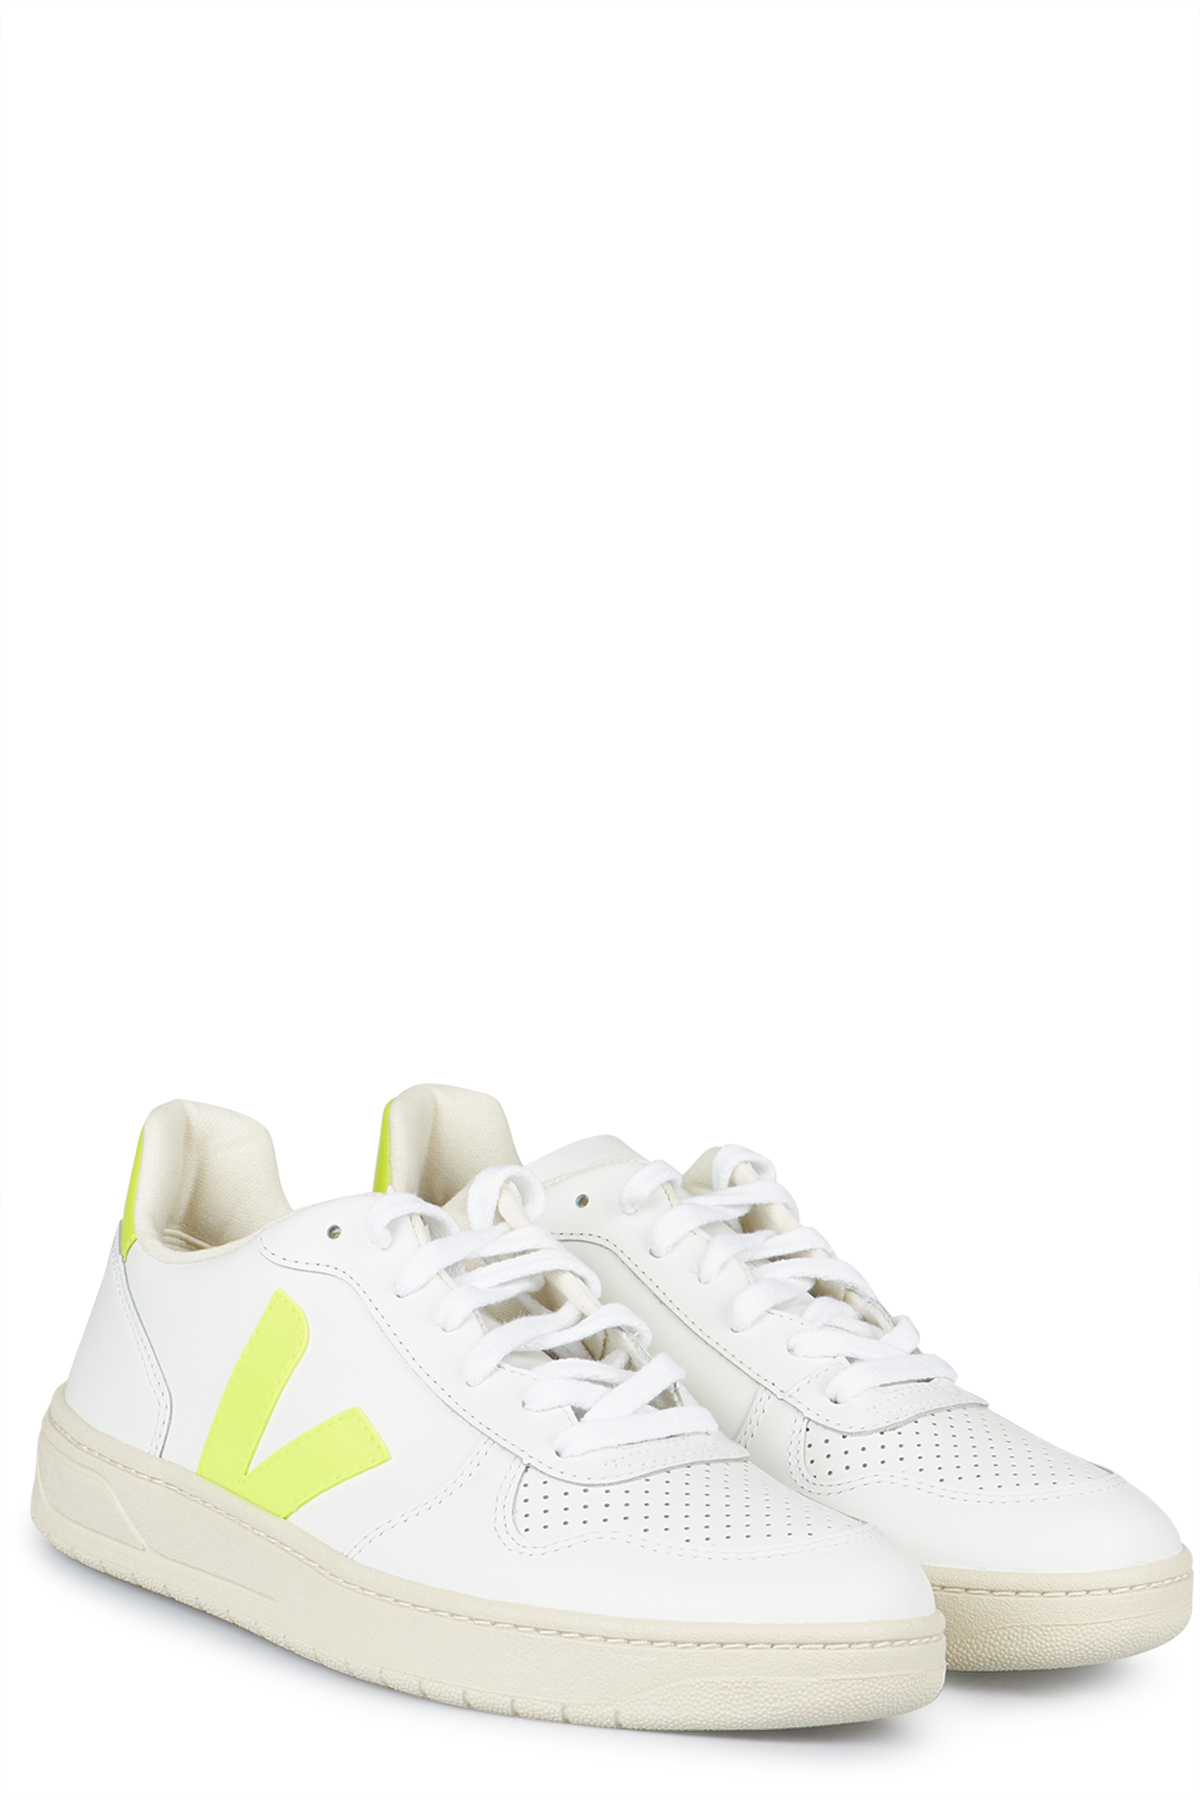 Sneakers V-10 Extra White Jaune Fluo